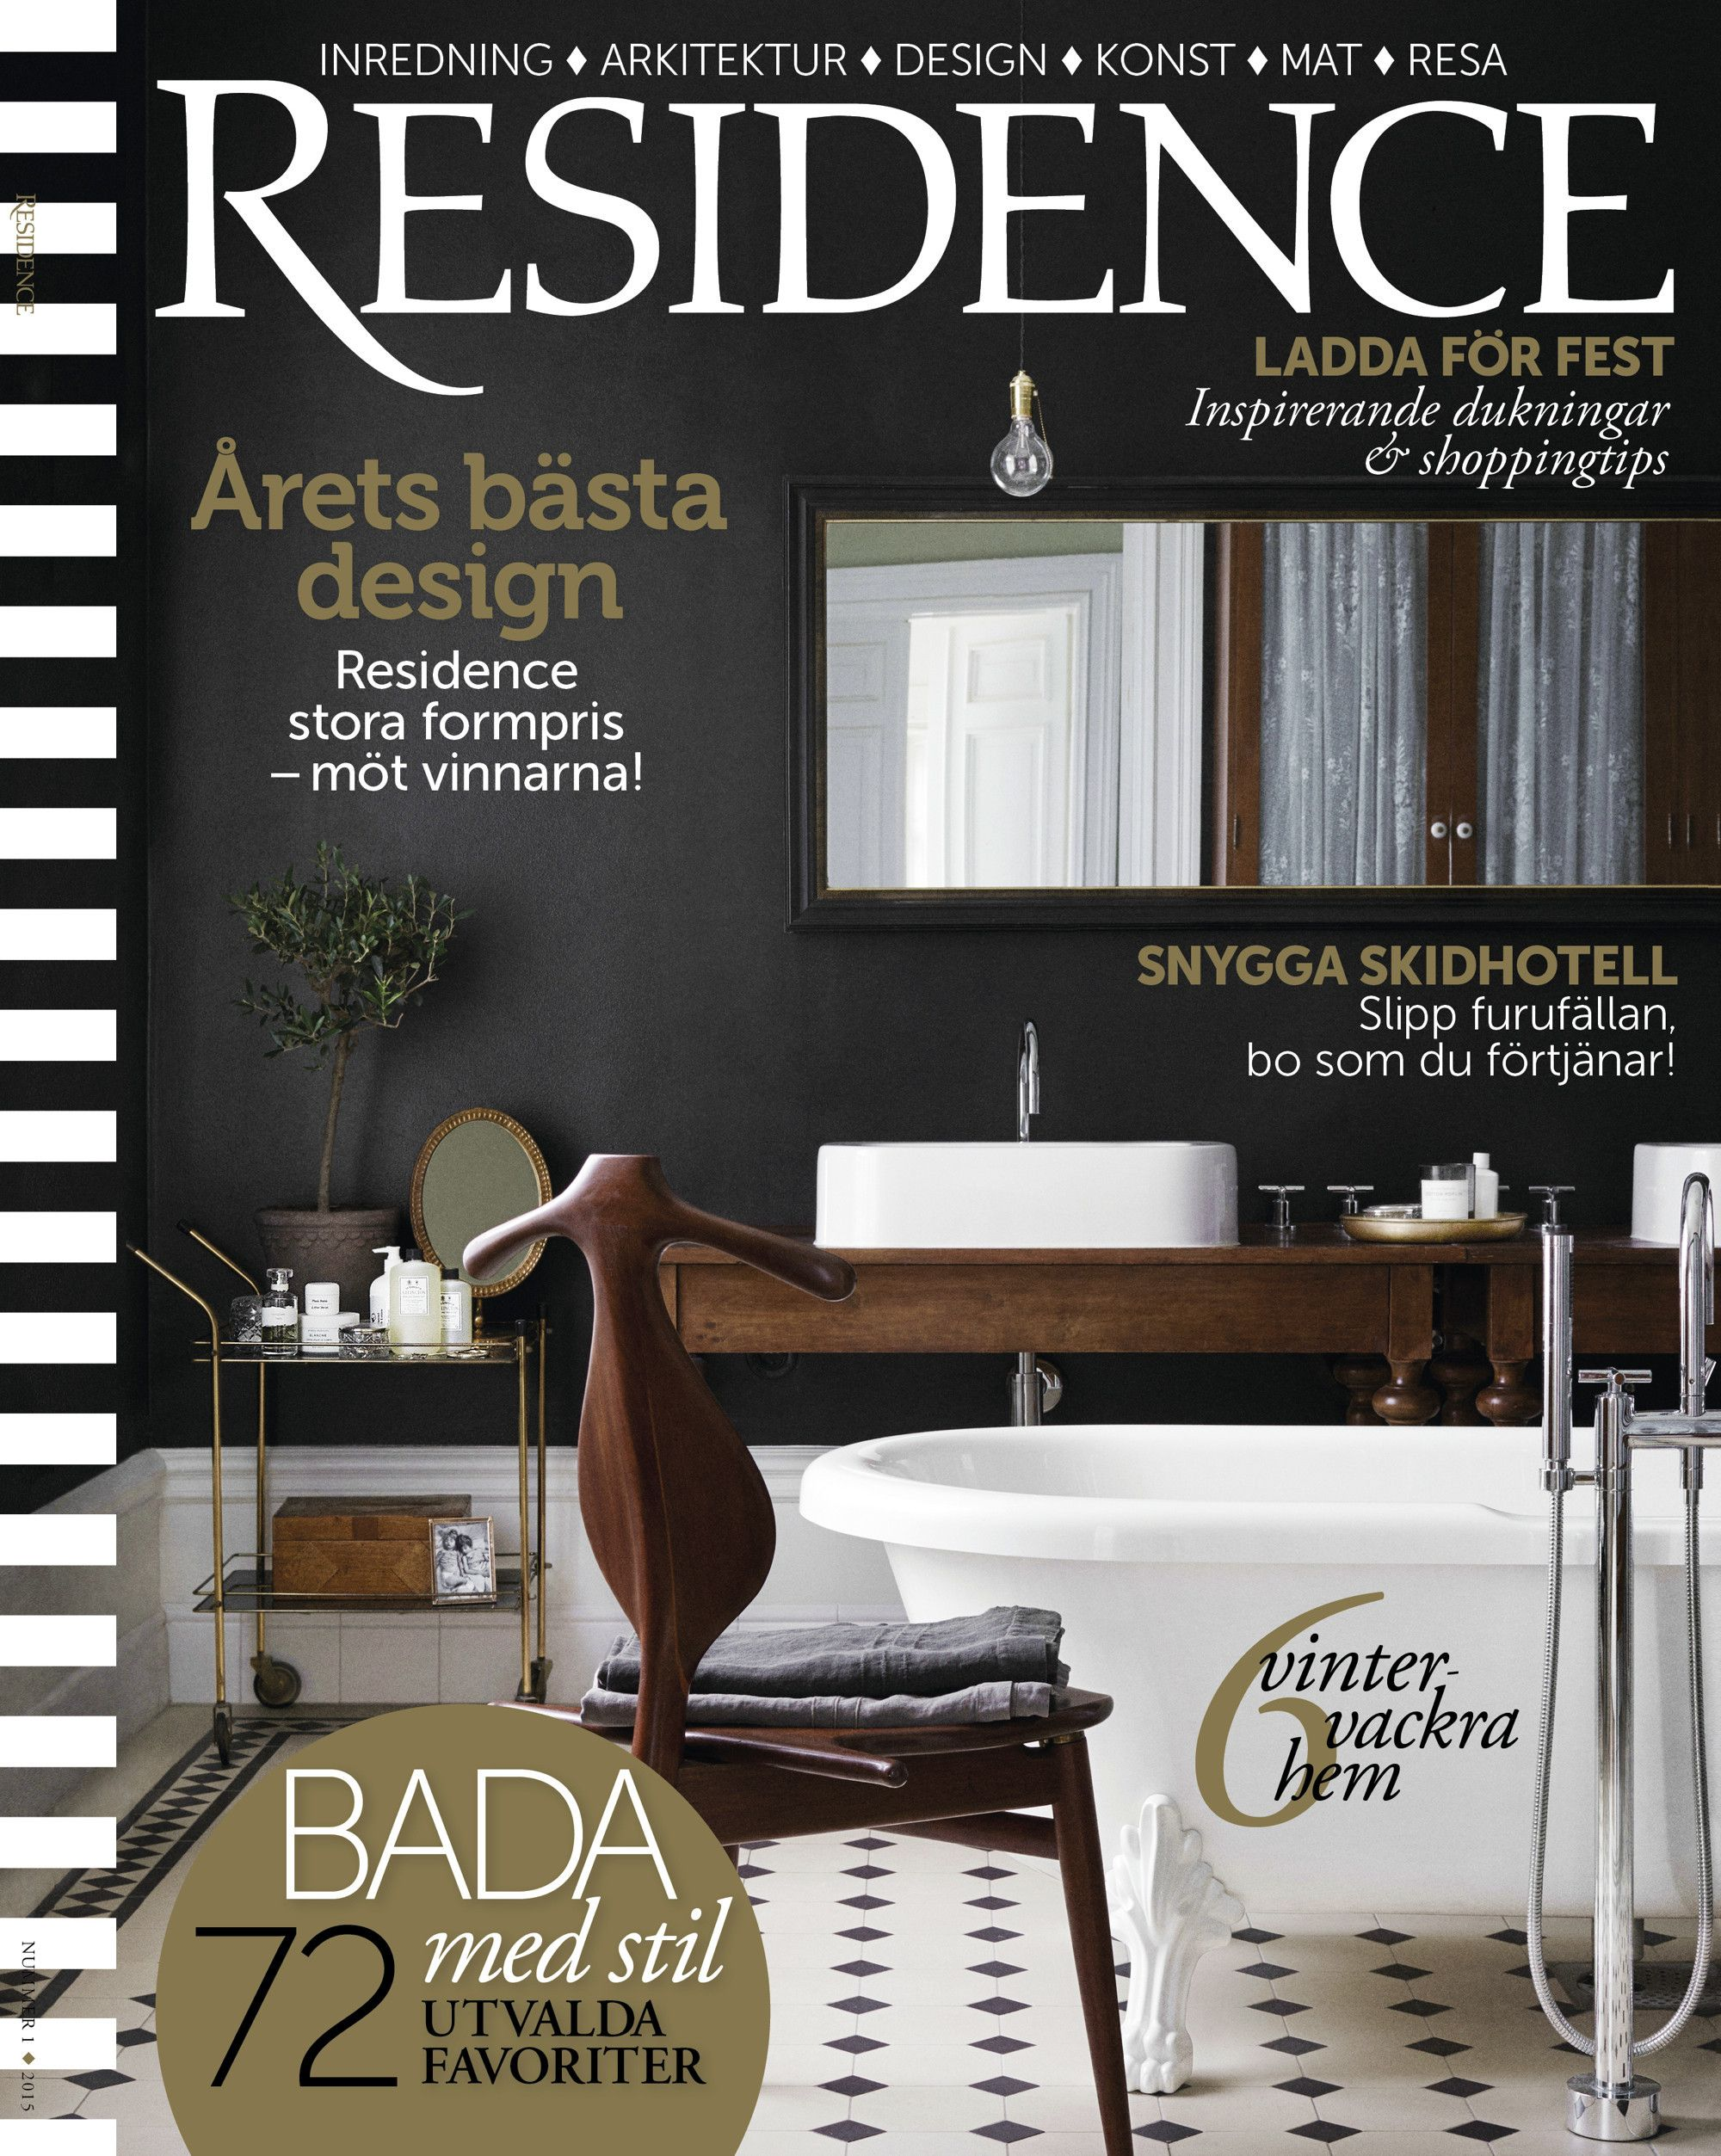 Residence Cover Styling by Lotta Agaton and Photography by Mikkel Mortensen. Bathroom styling with black walls